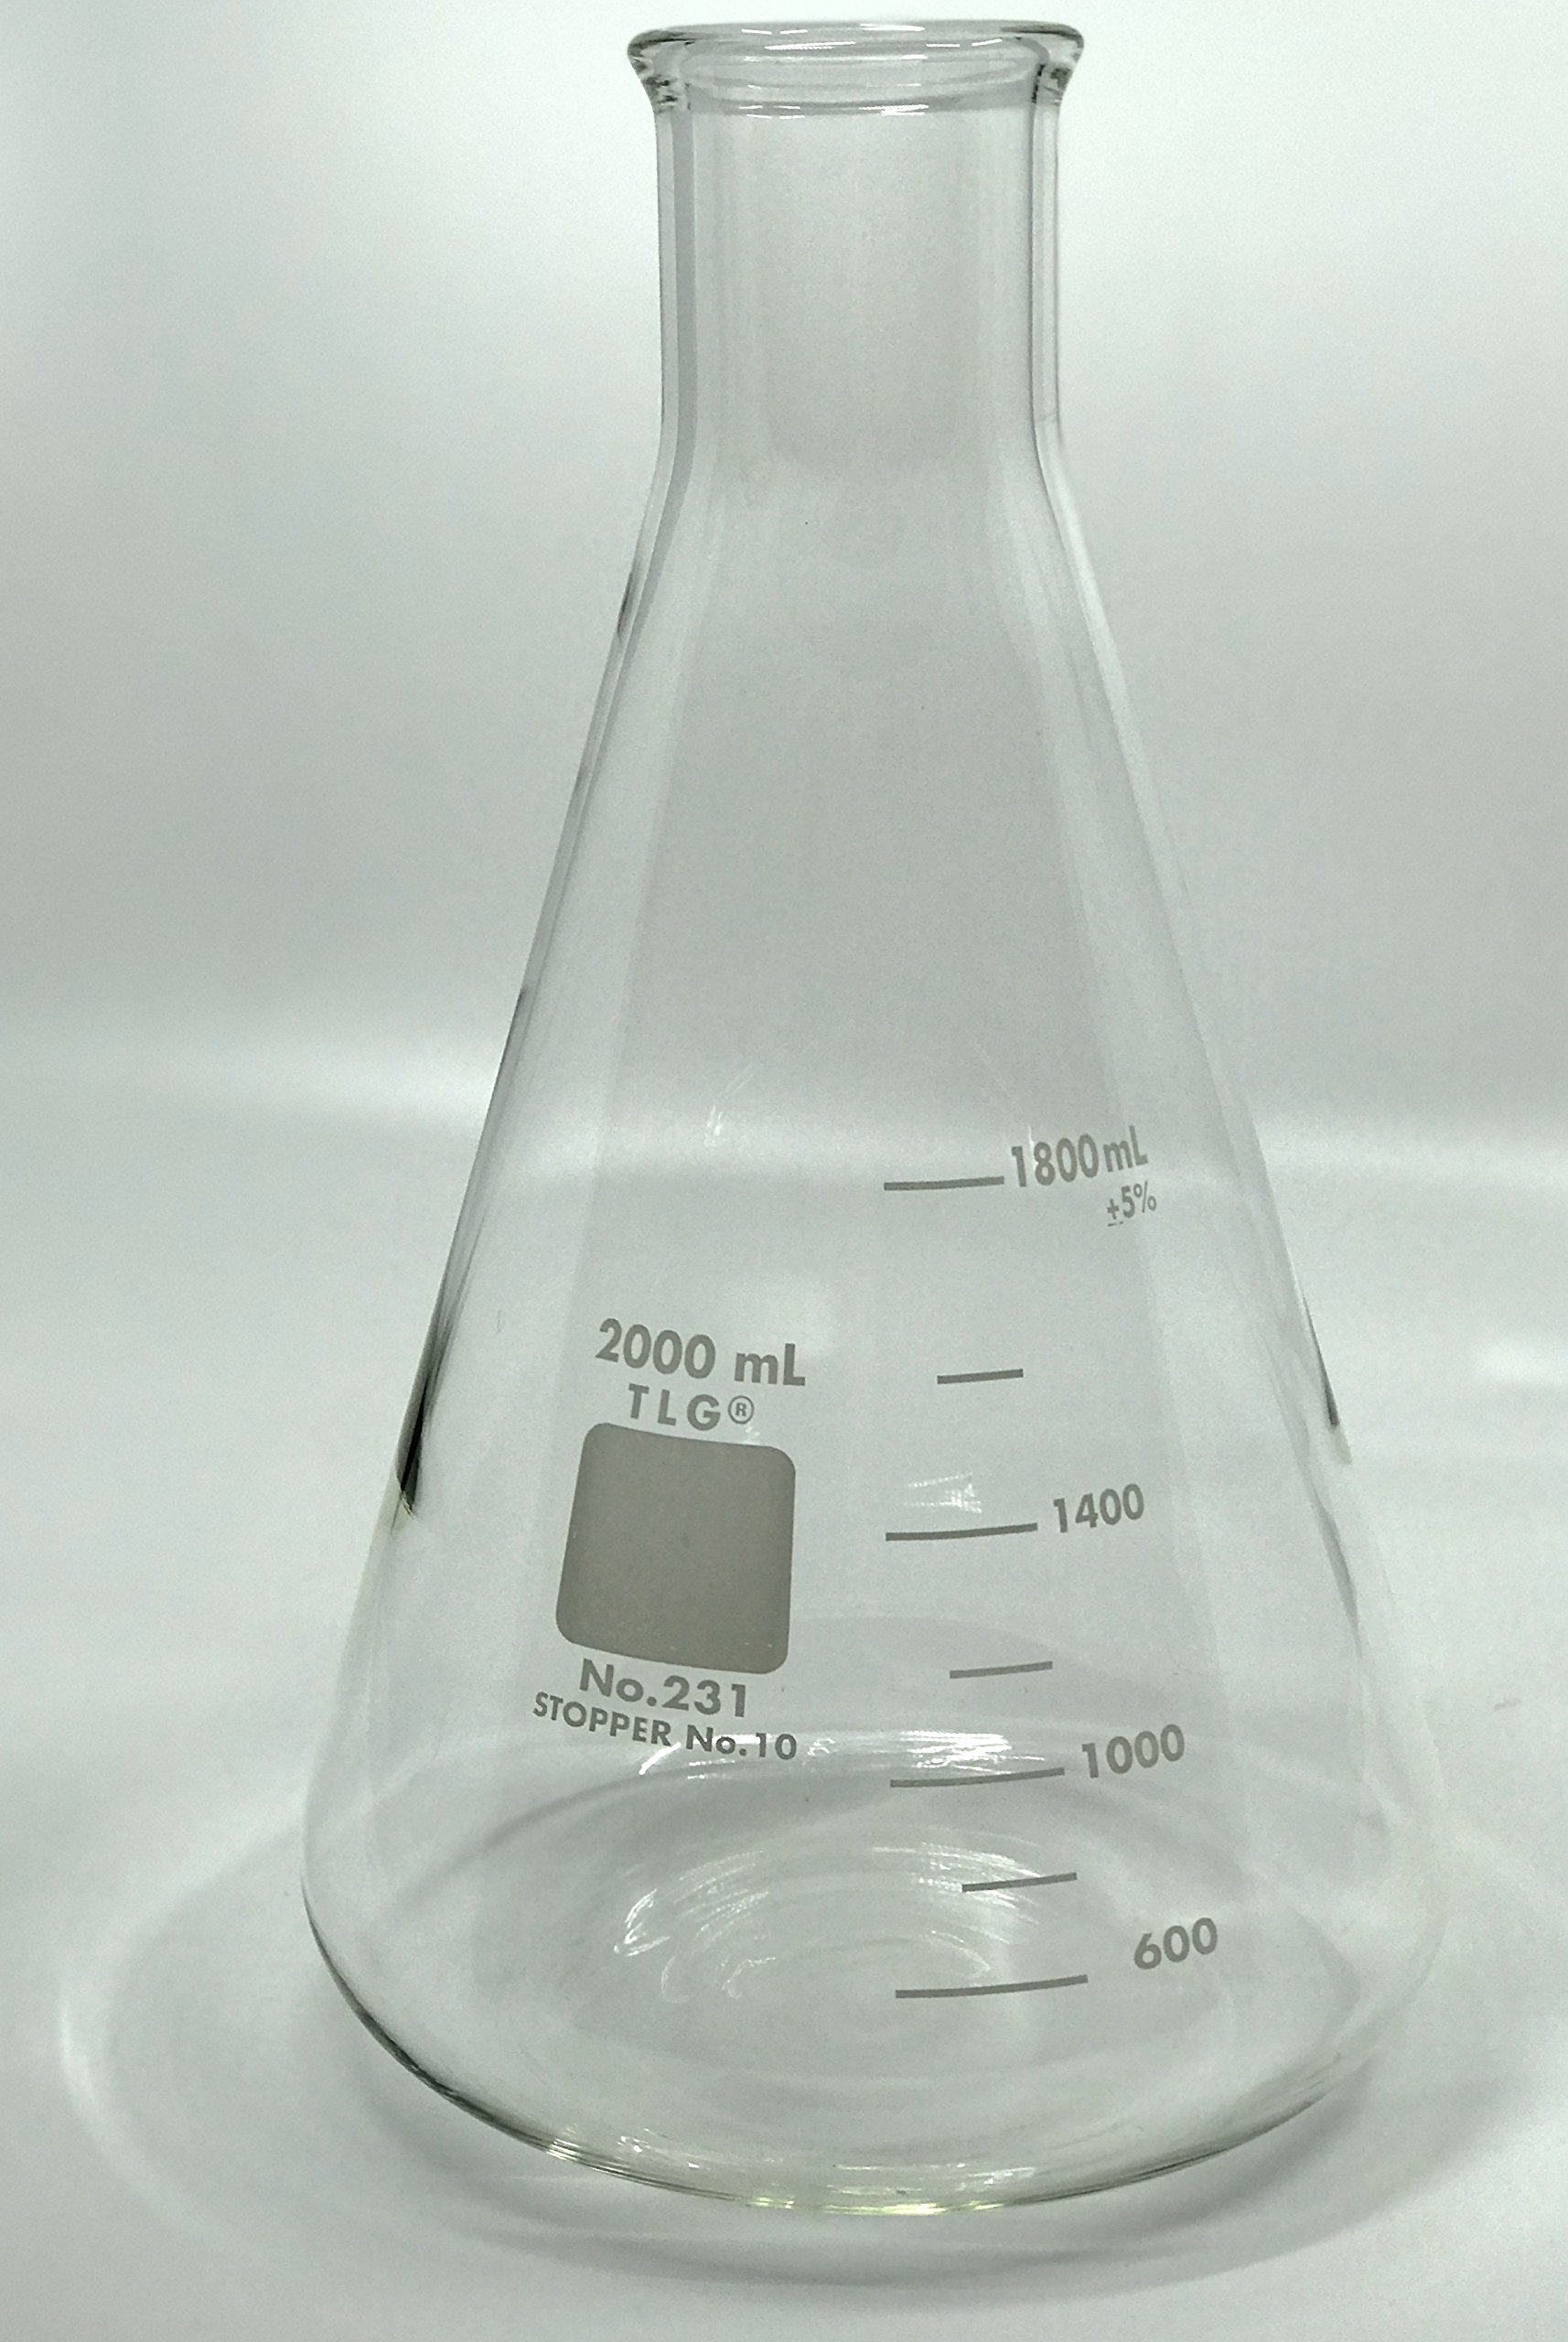 Chem Science INC 231.202.08 Erlenmeyer Flask, Narrow Neck with Graduation, Capacity 2000Ml, Rubber Stopper 10, 2000Milliliters, Degree C, Borosilicate Glass, (